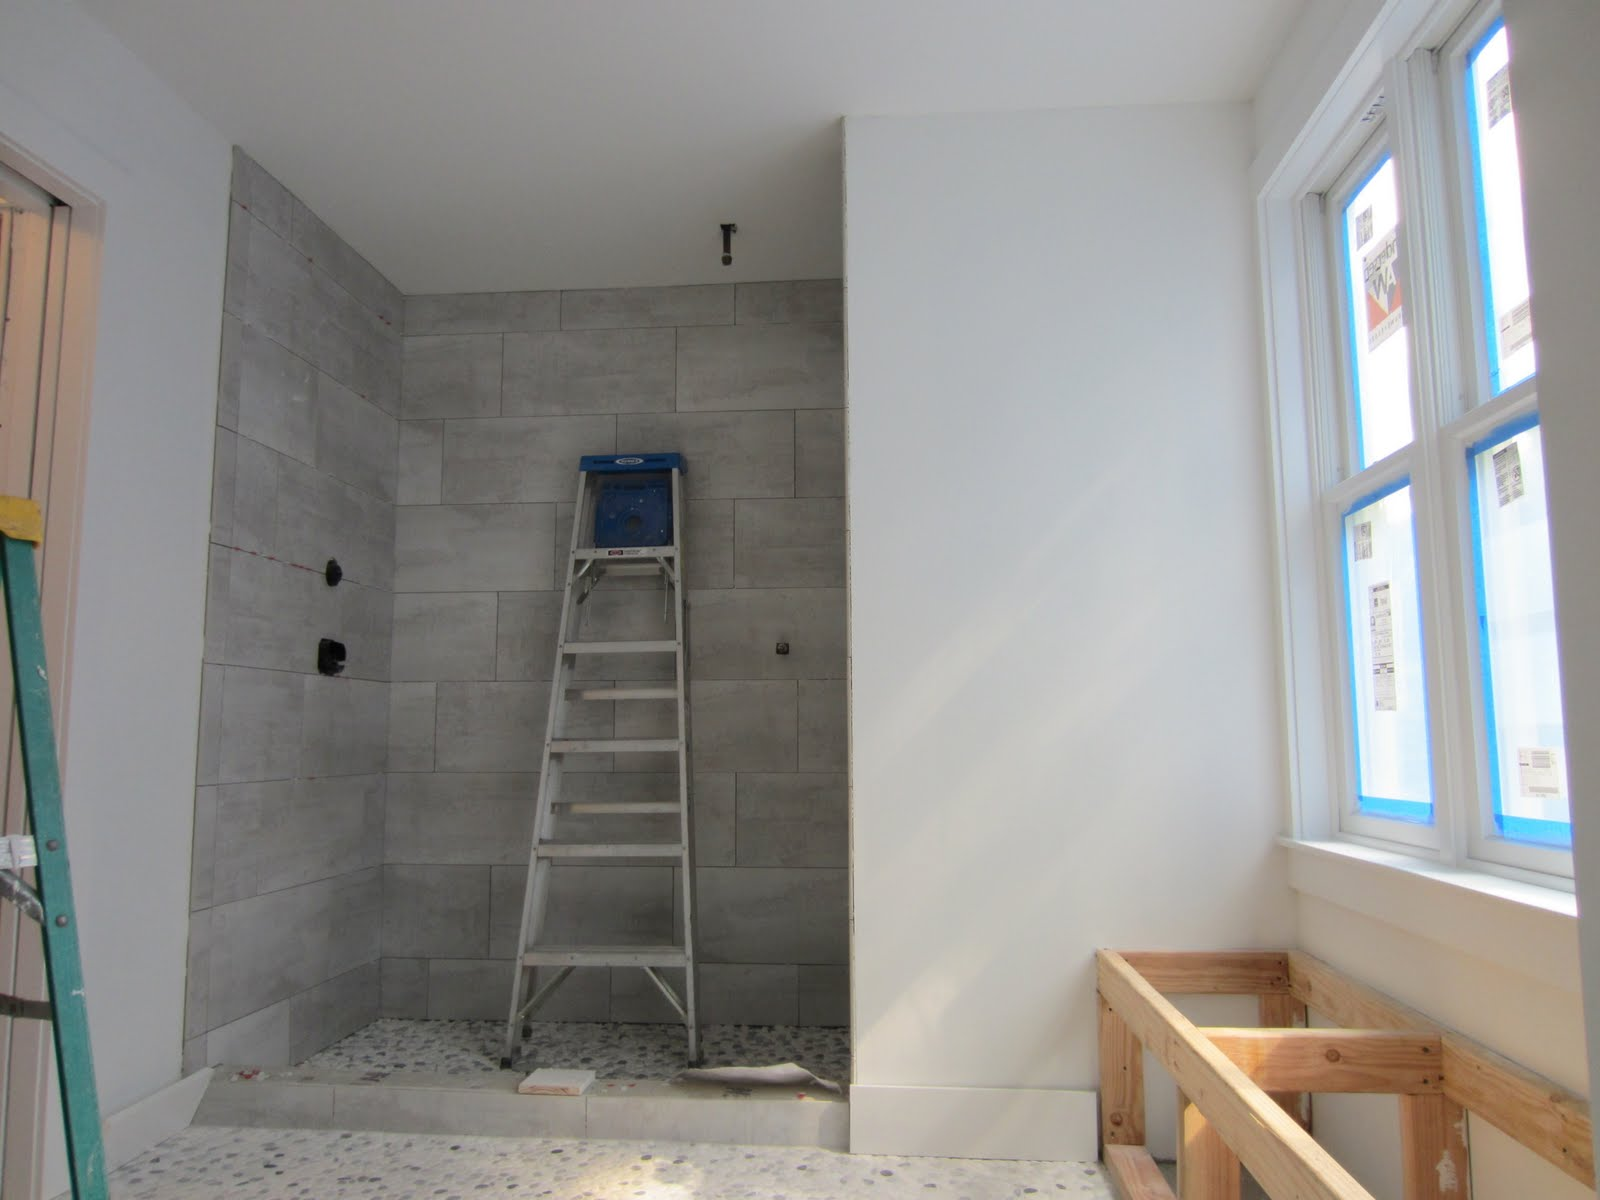 Bathroom Wall Tile for Shower